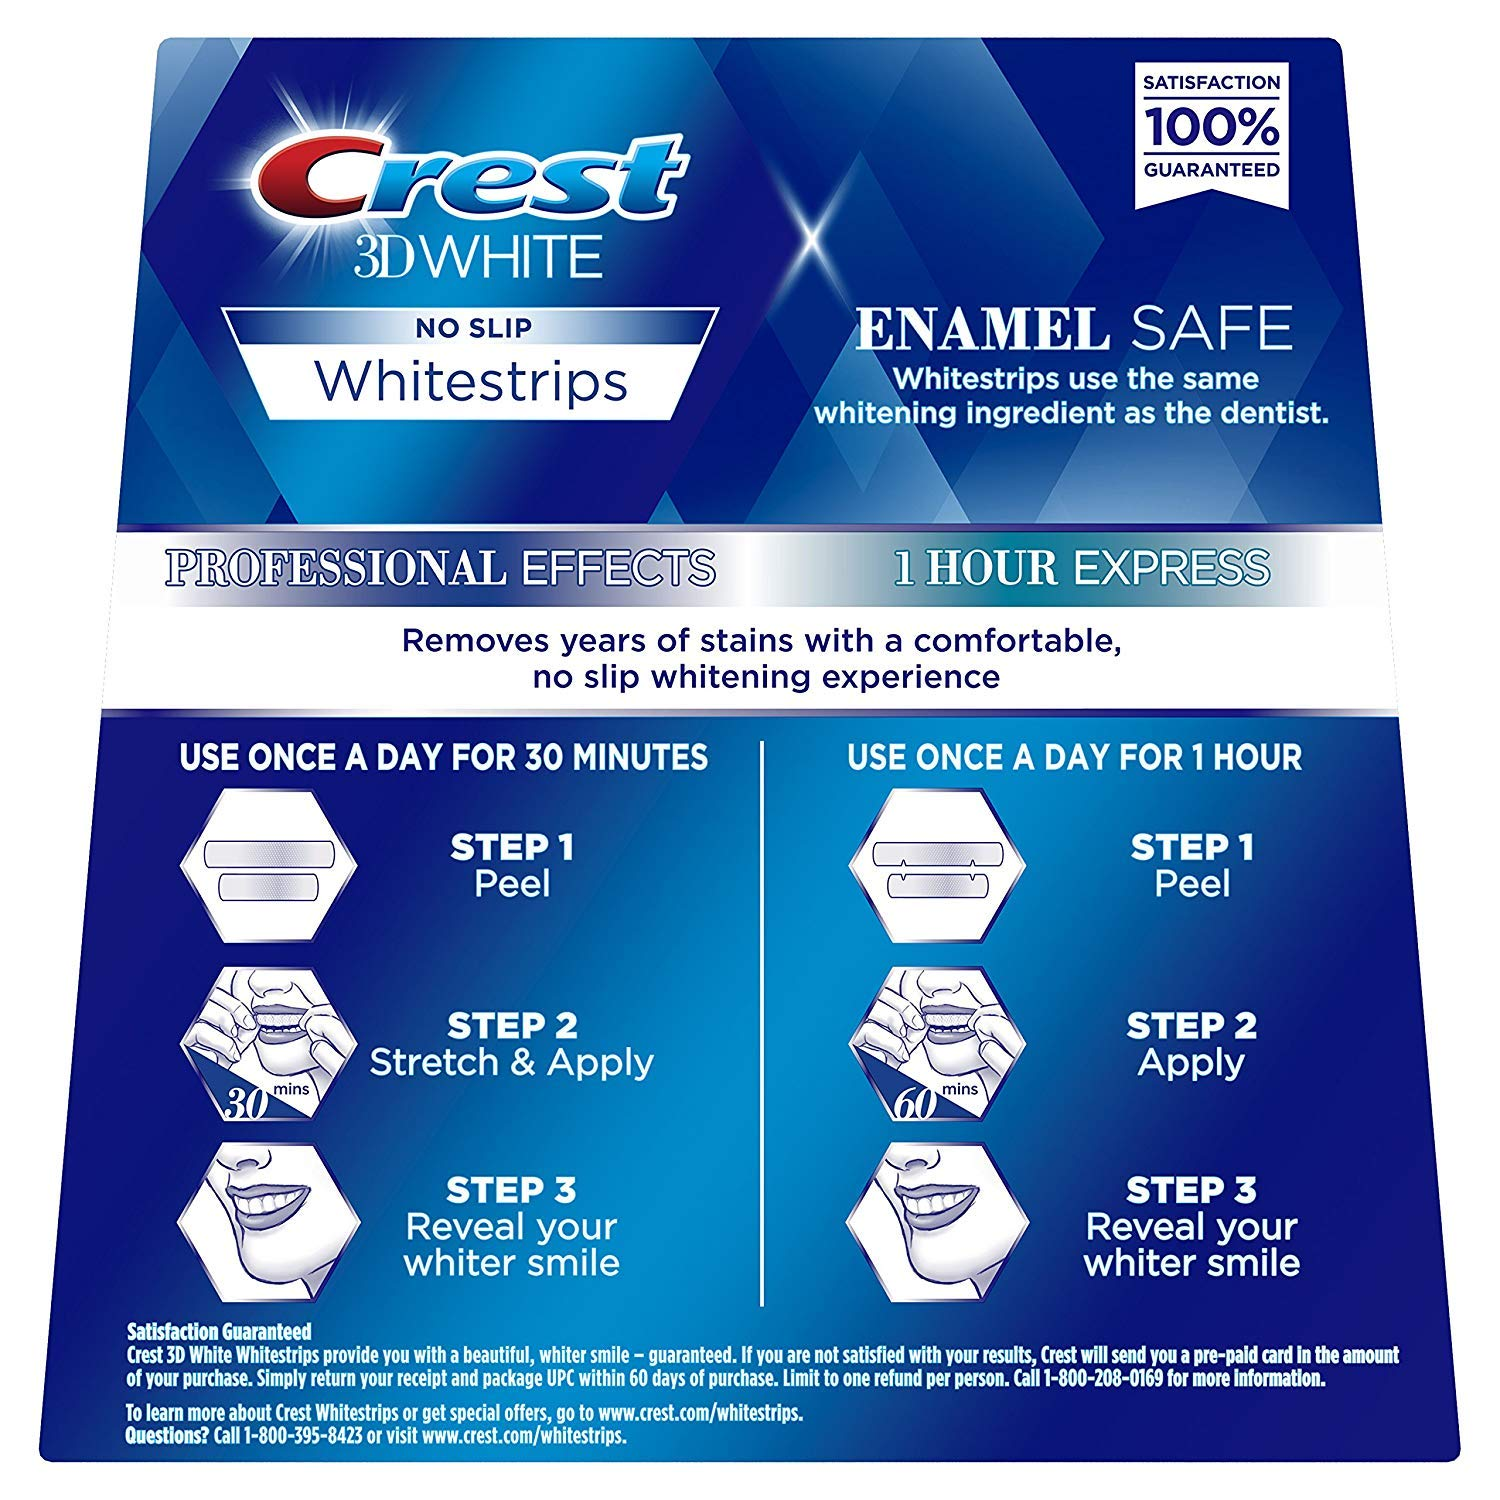 Crest 3D White Professional Effects Whitestrips Whitening Strips Kit  best teeth whitening kit 2020